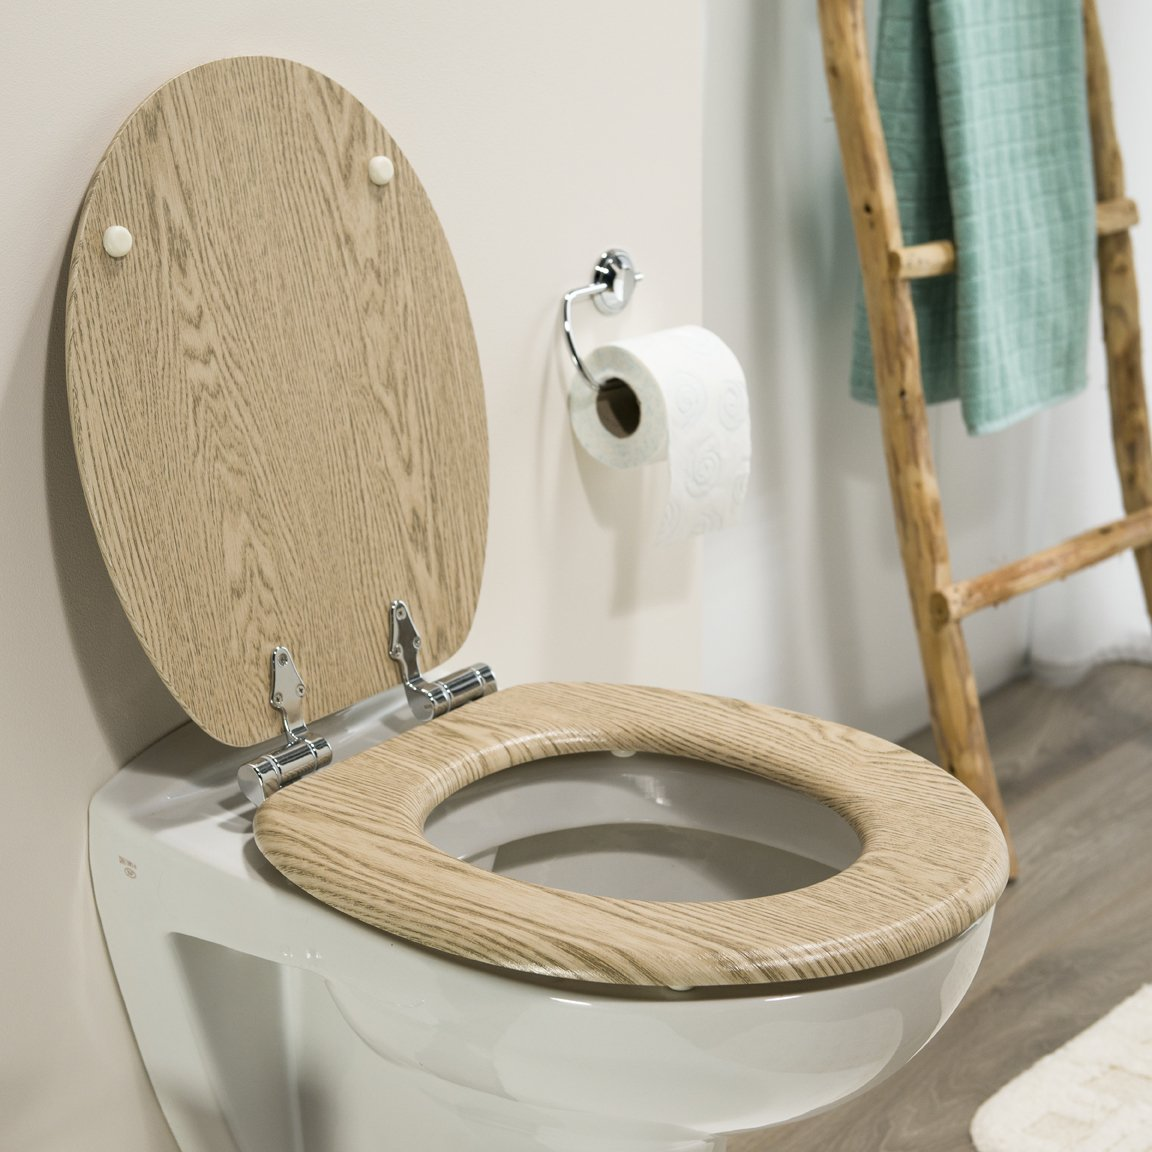 Tiger Steigerhout 252022546 Toilet Seat with Soft-Closing Mechanism Natural Wood Look